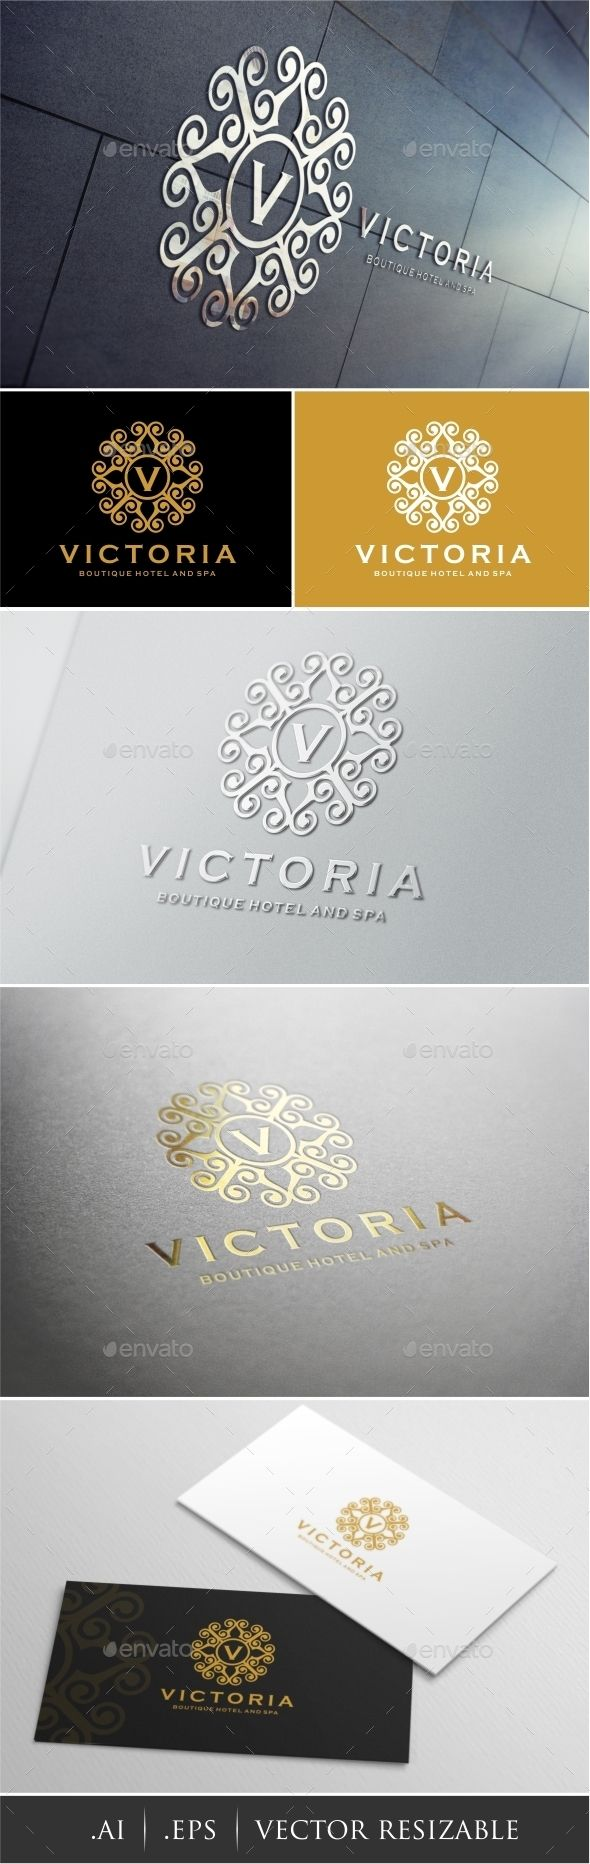 Victoria - Boutique Hotel Spa Logo Template #design #logotype Download: http://graphicriver.net/item/victoria-boutique-hotel-spa-logo/12777587?ref=ksioks